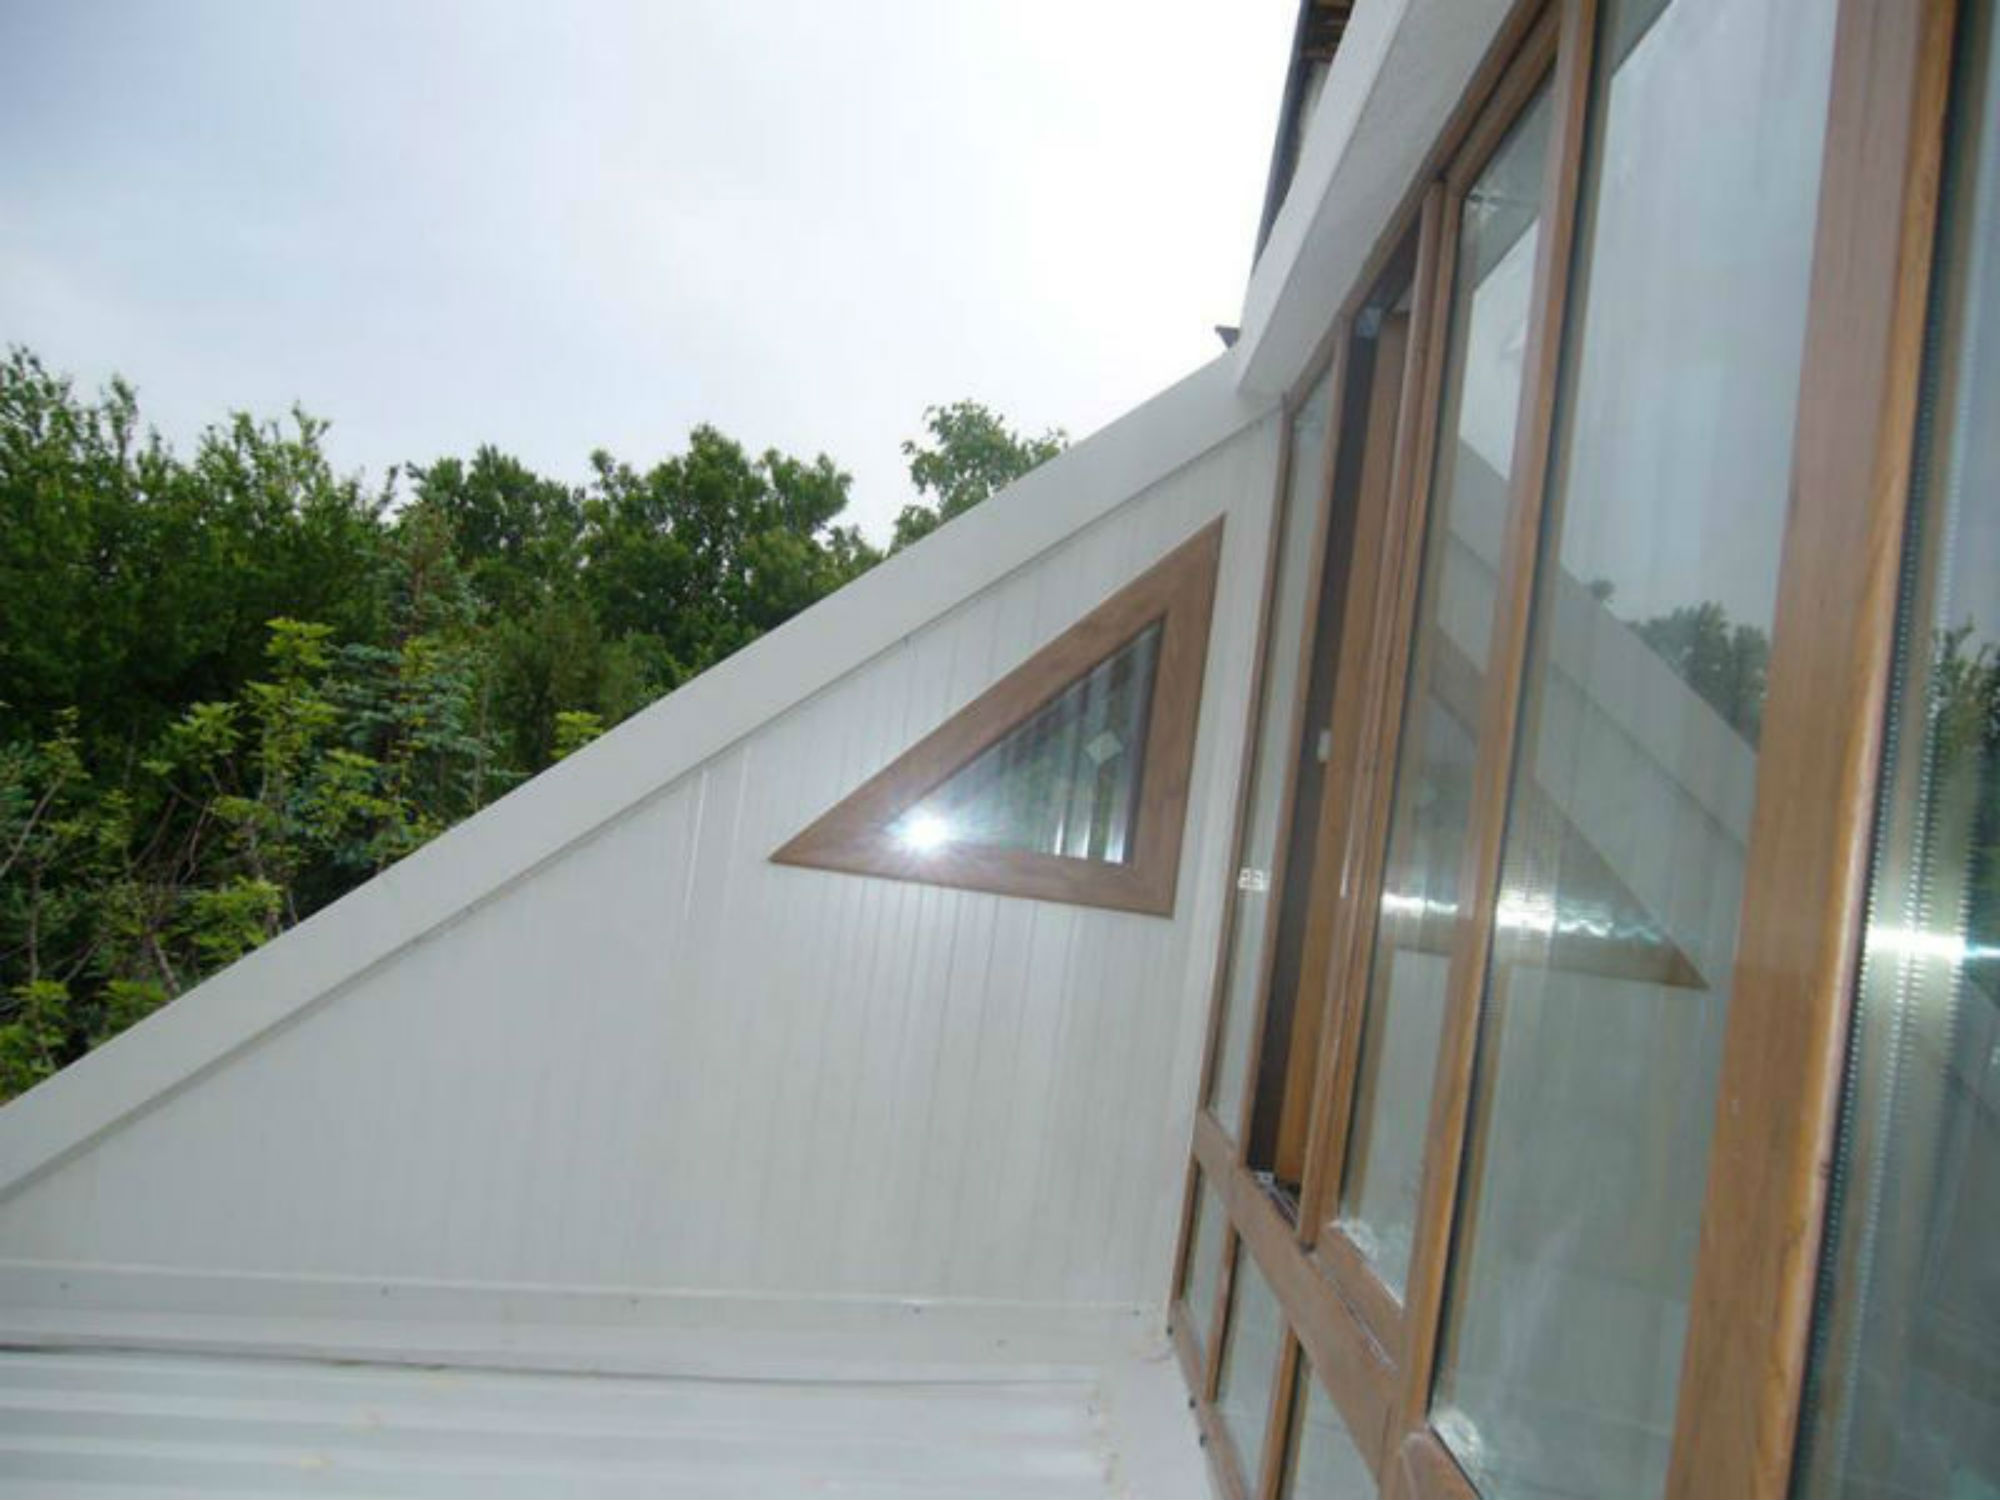 PVC windows - triangular shape